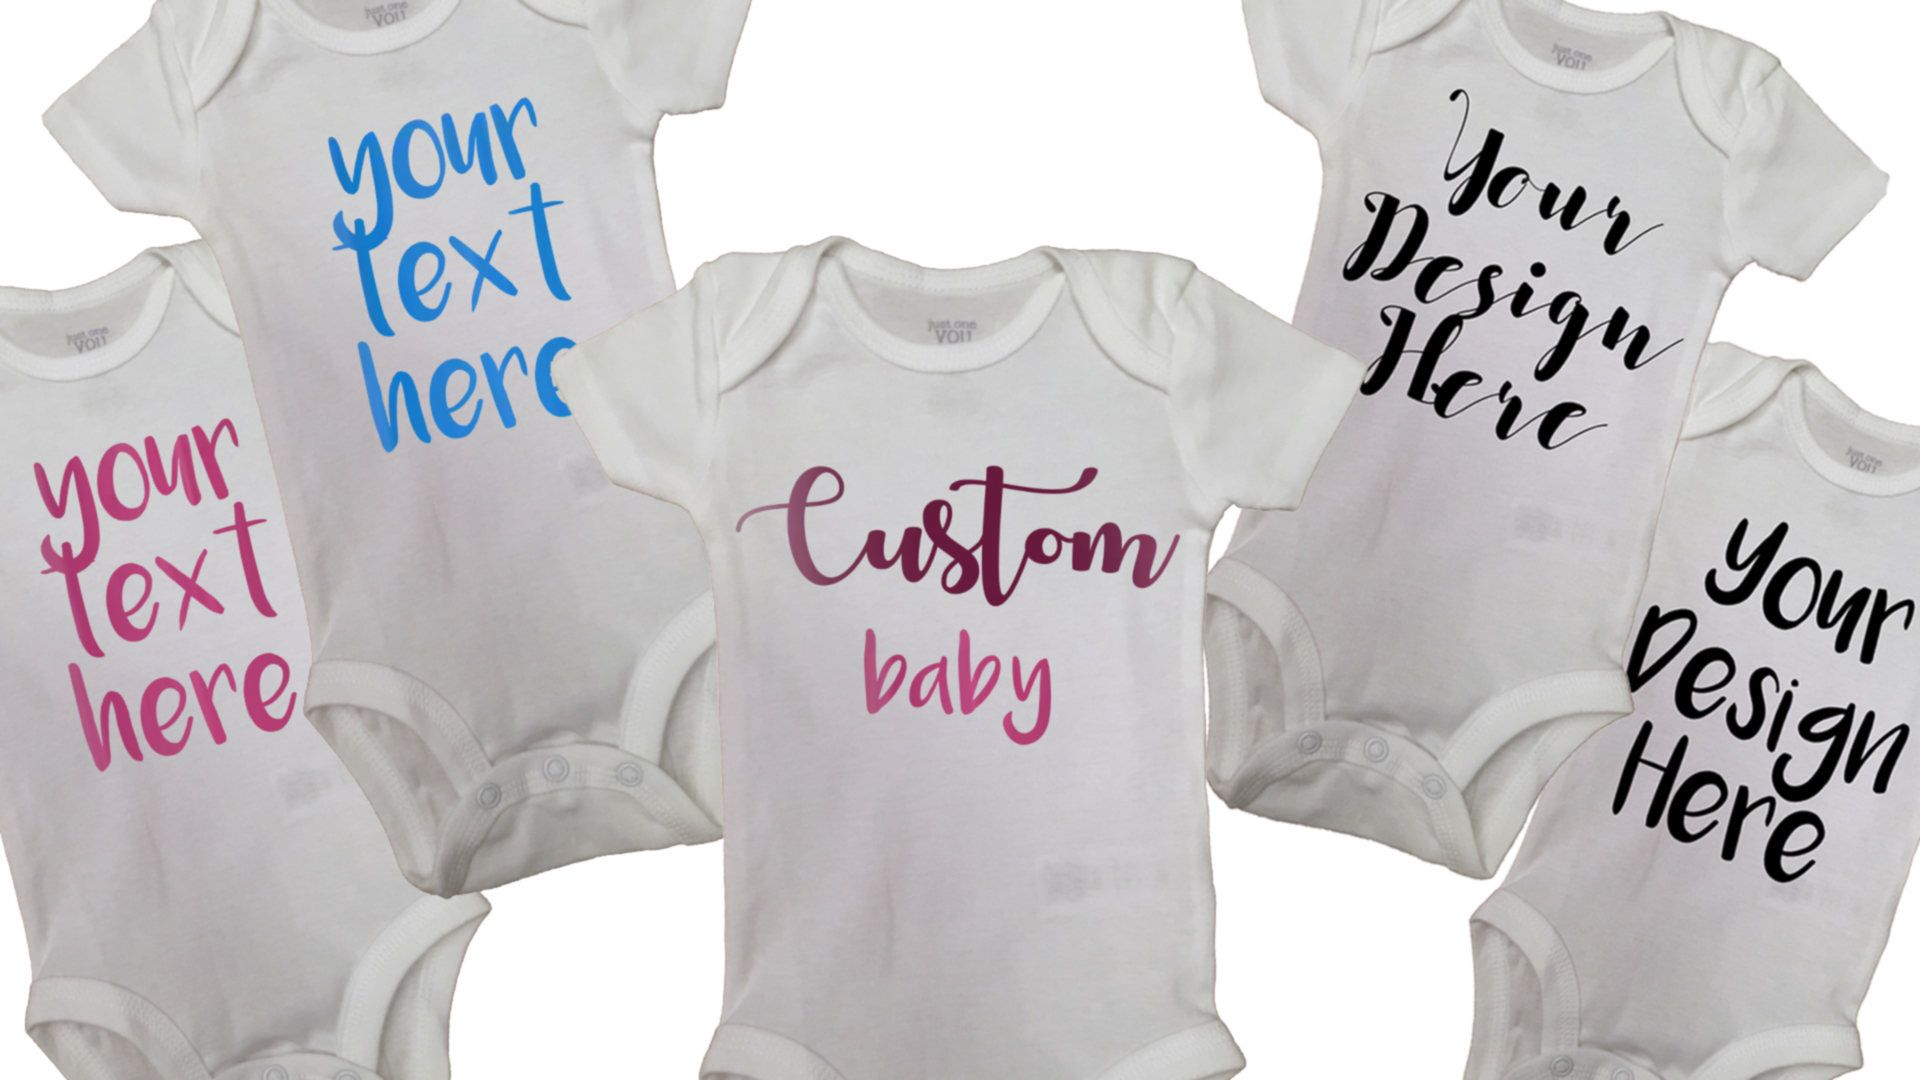 e1507f001 Design Your Own Custom Baby Onesie, Pregnancy Announcement, Personalized  Baby, Coming Home Outfit